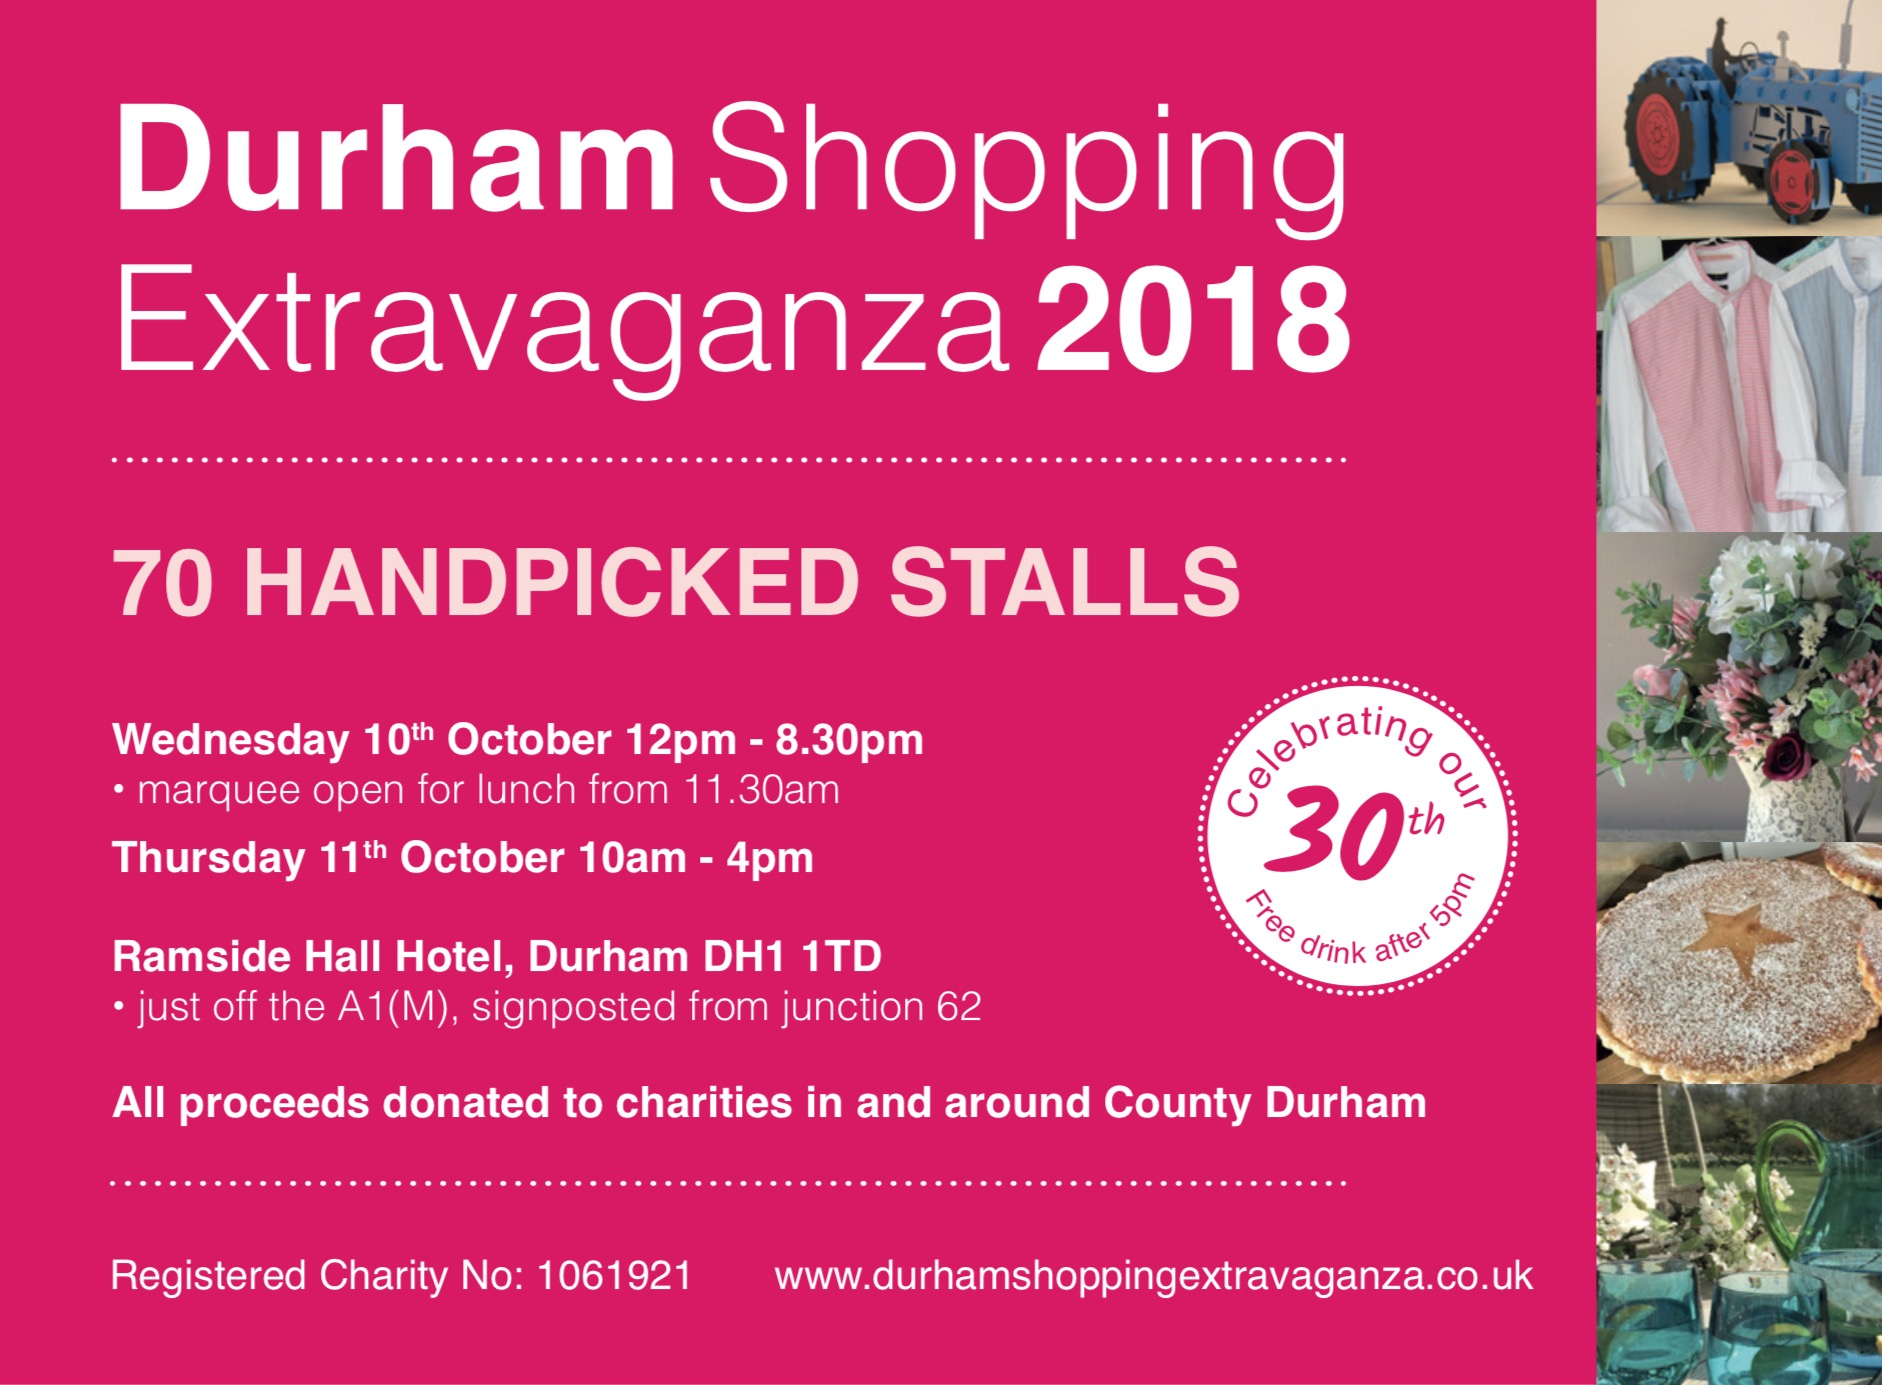 Would You Like A Lift To The Durham Shopping Extravaganza Utass